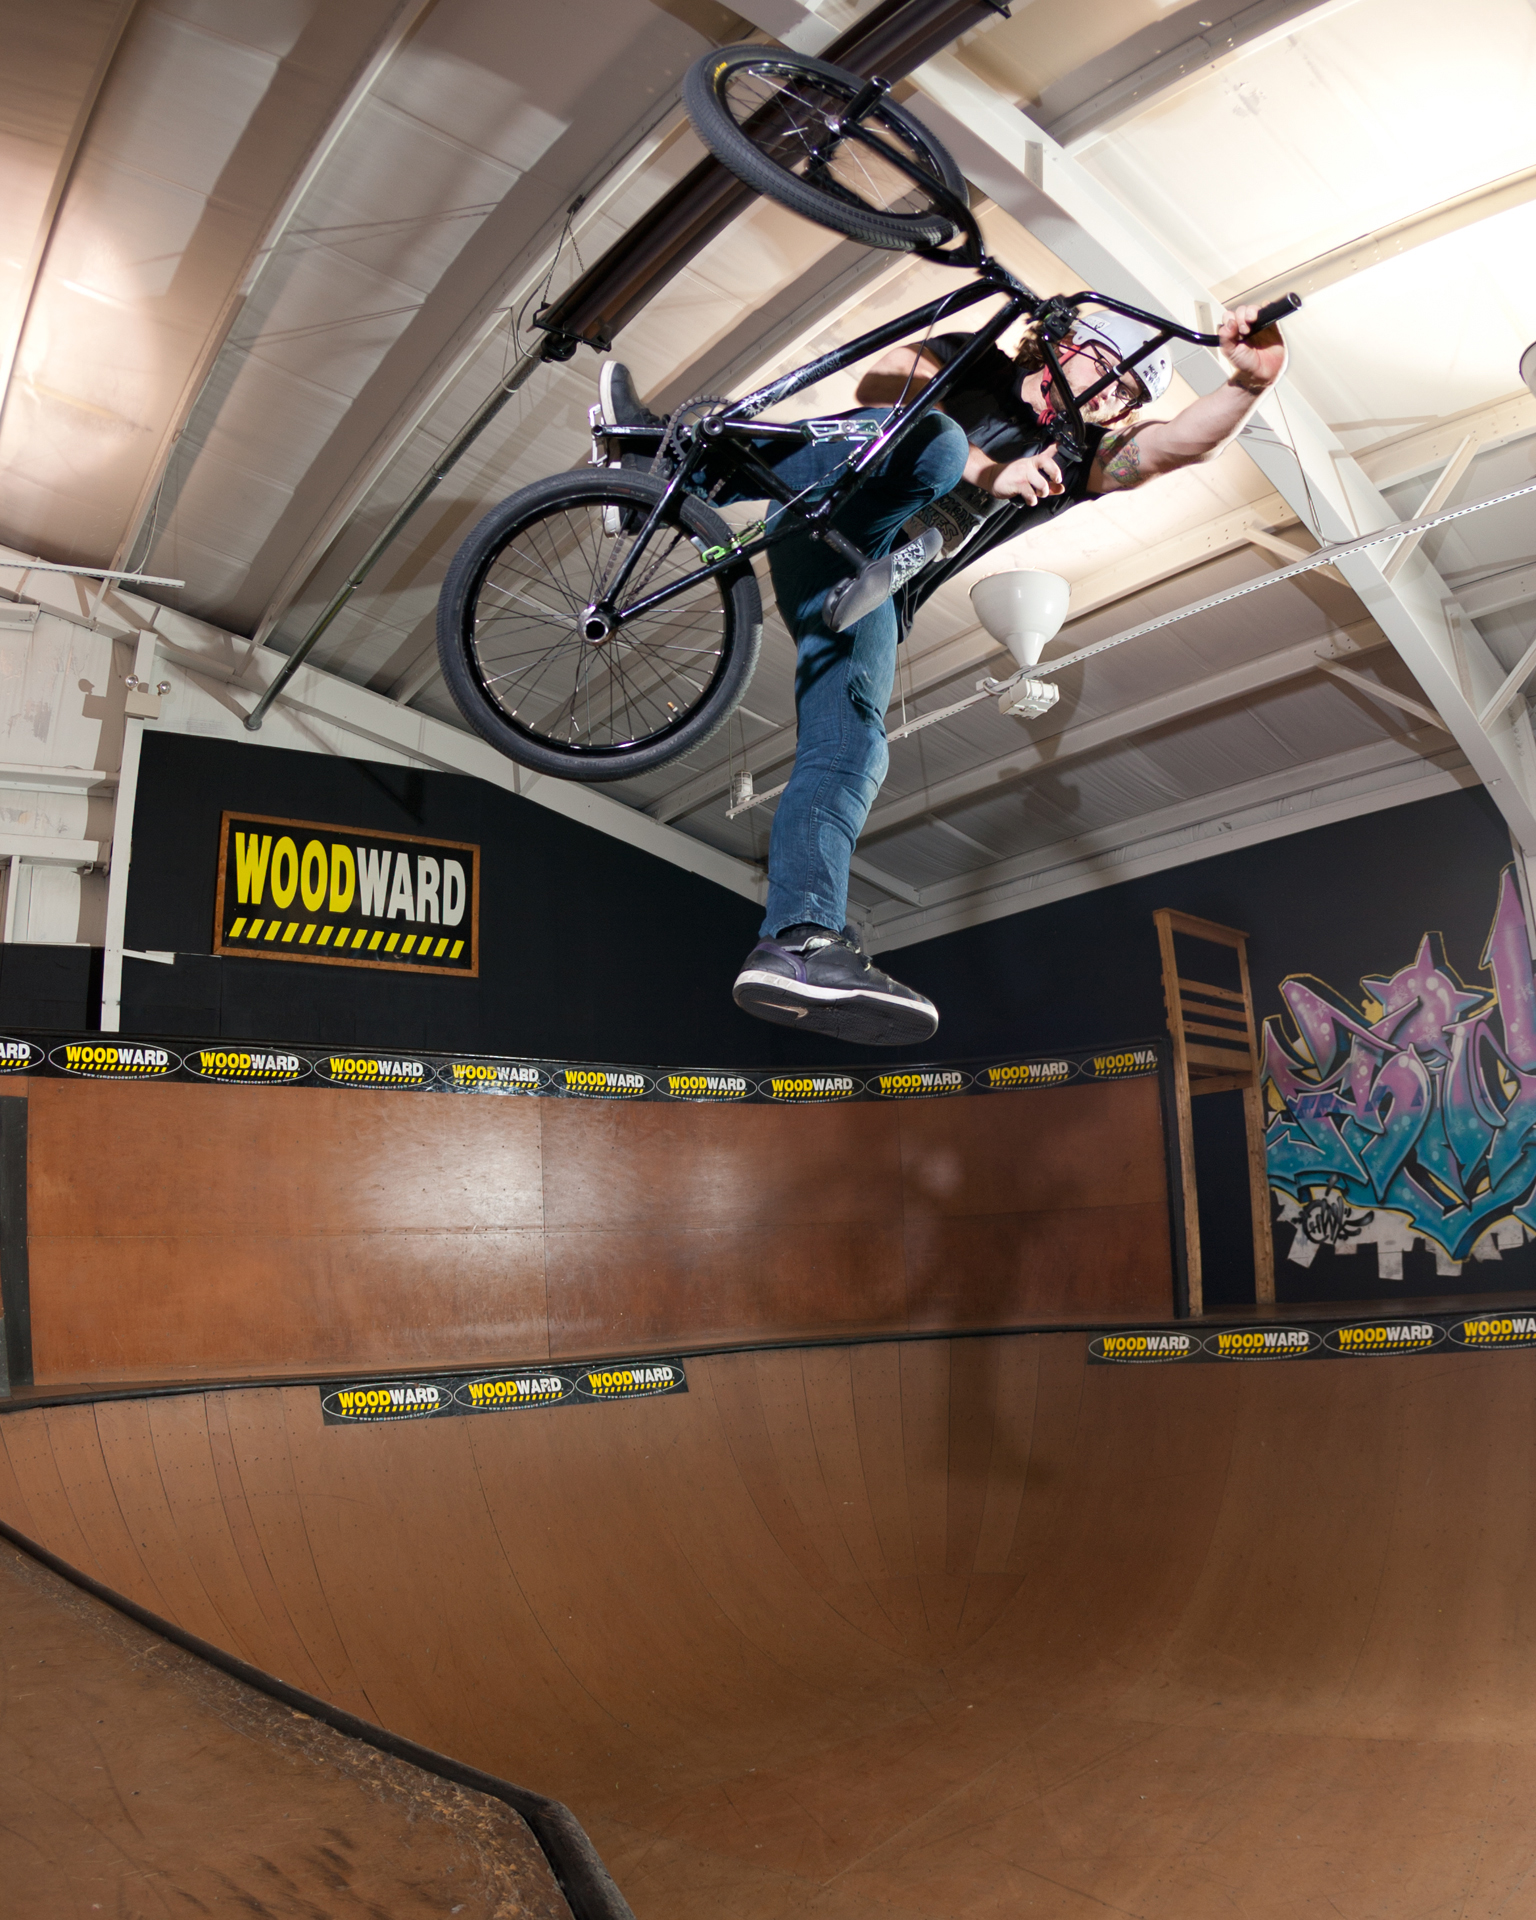 One-footed invert, Woodward Camp, 2012